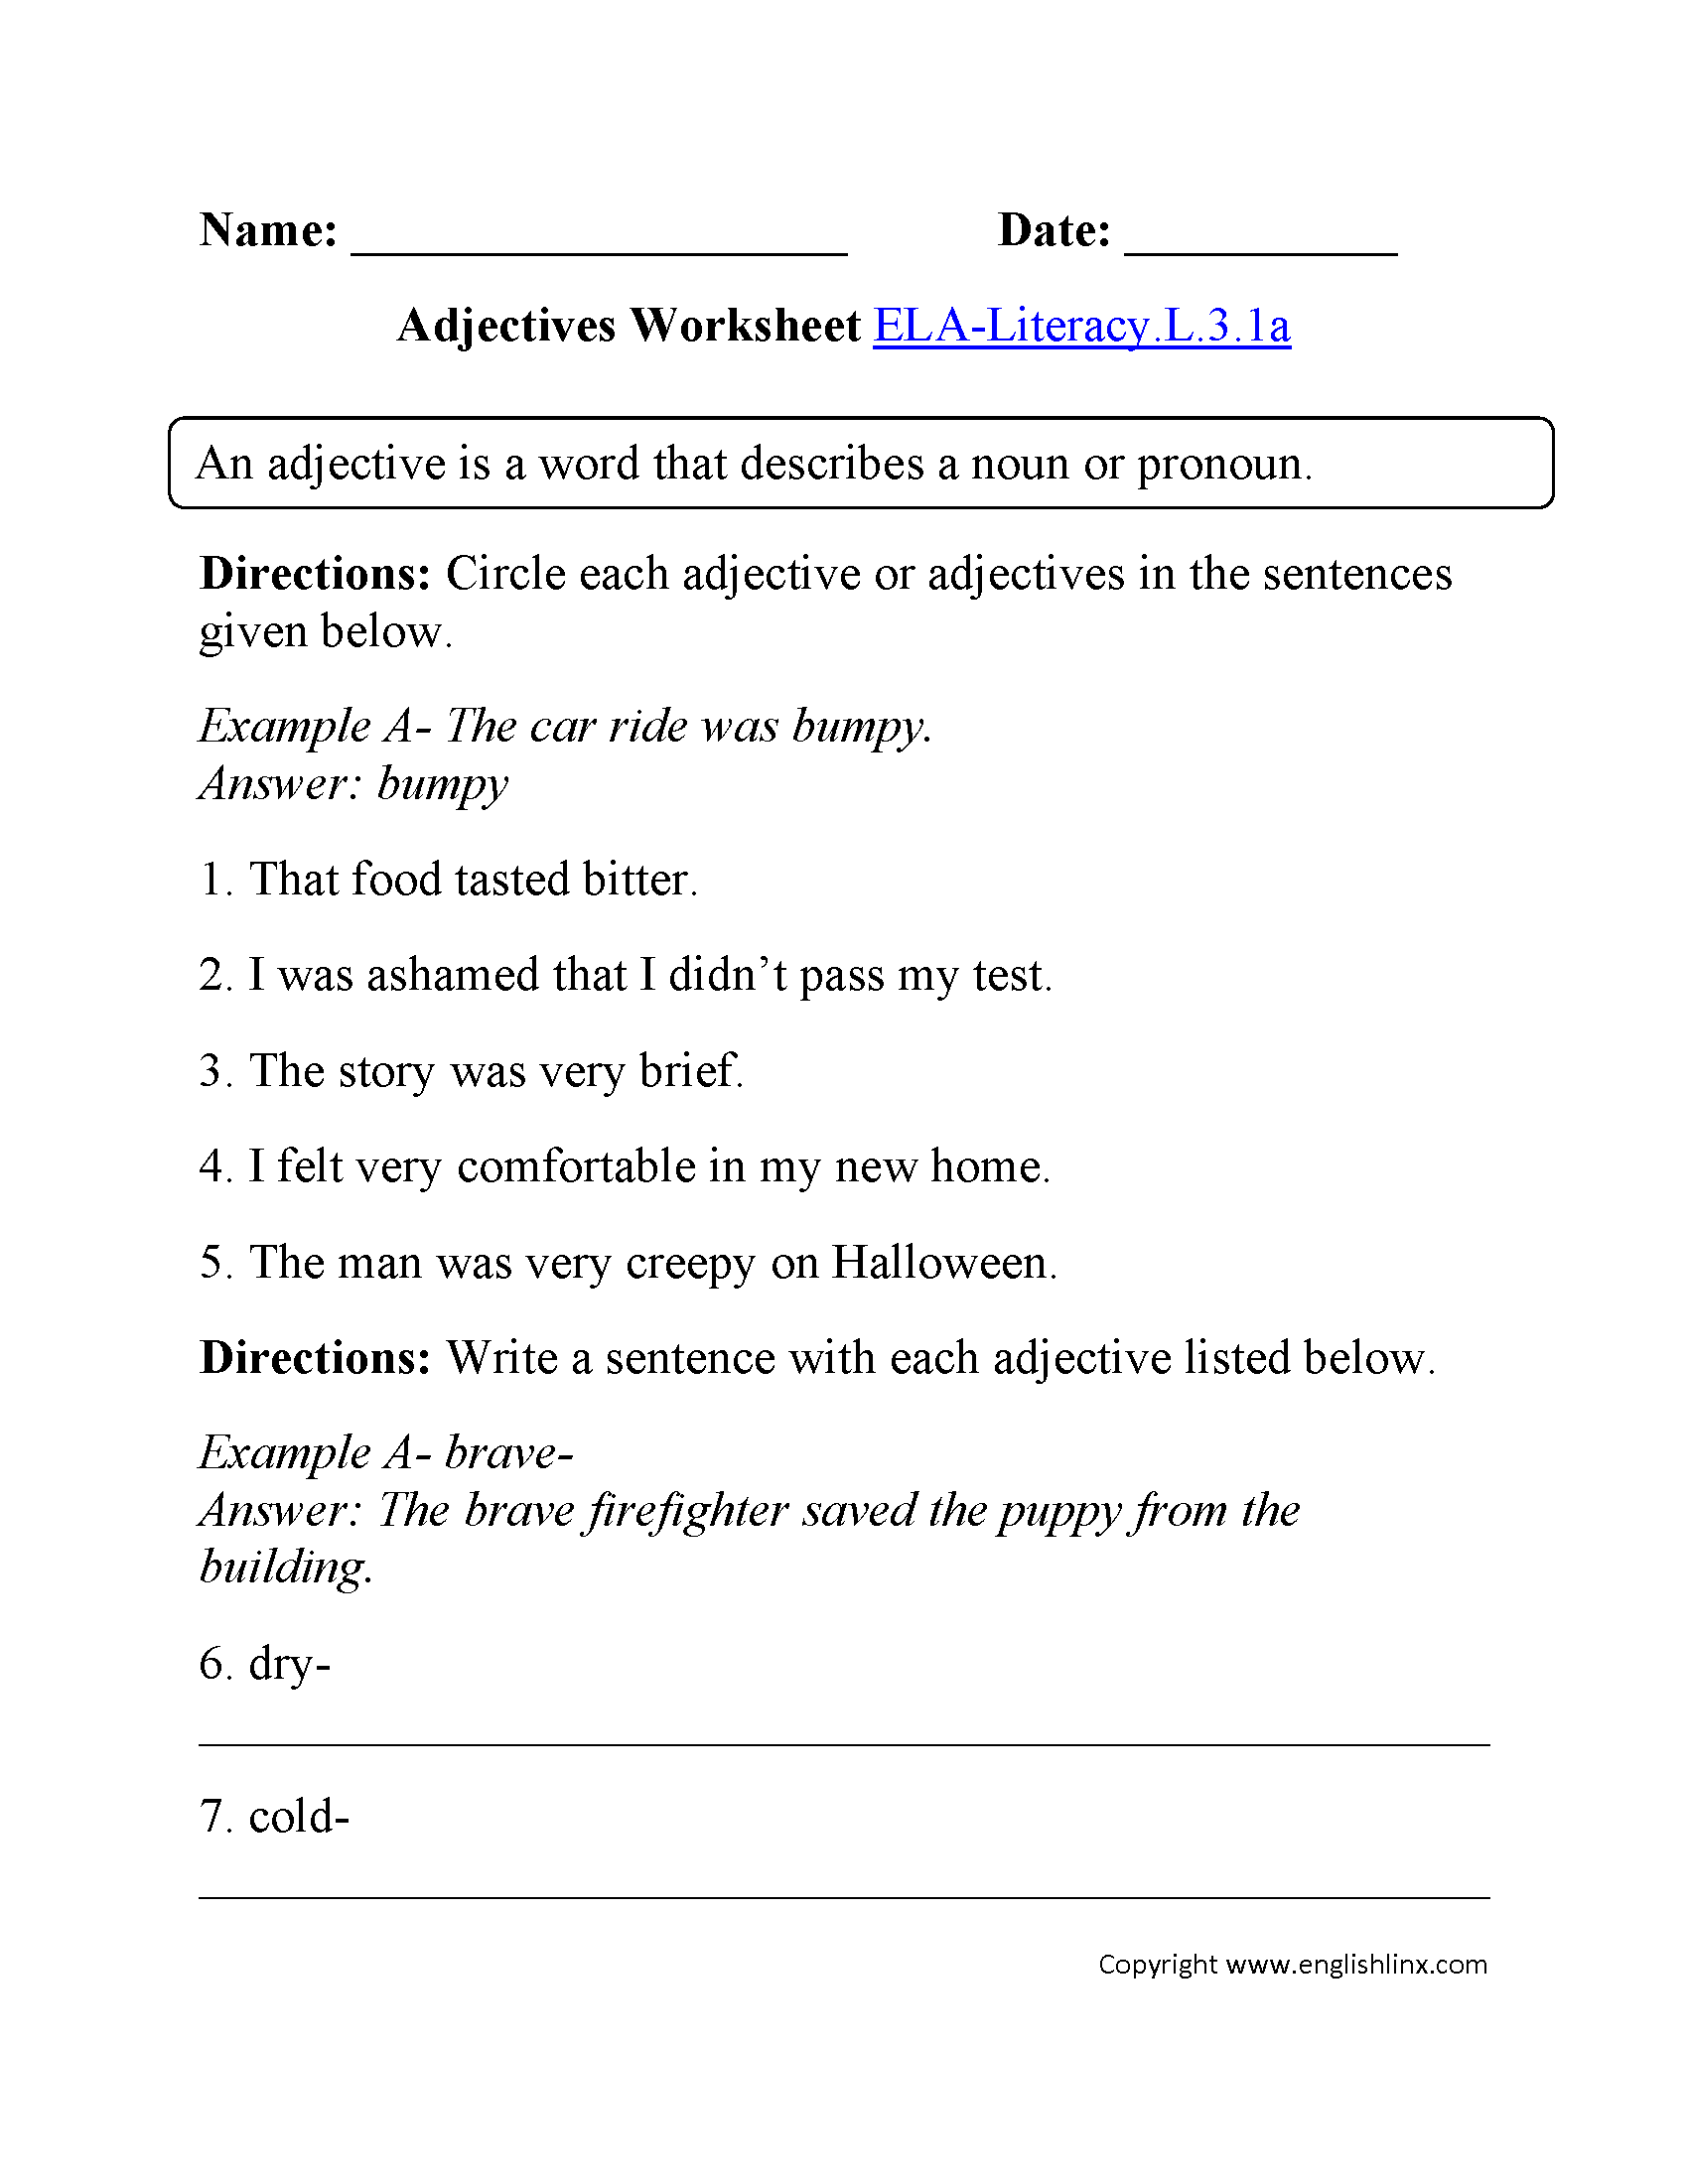 worksheet Comparative Adjectives Worksheets 3rd grade common core language worksheets adjectives worksheet 2 ela literacy l 3 1a worksheet